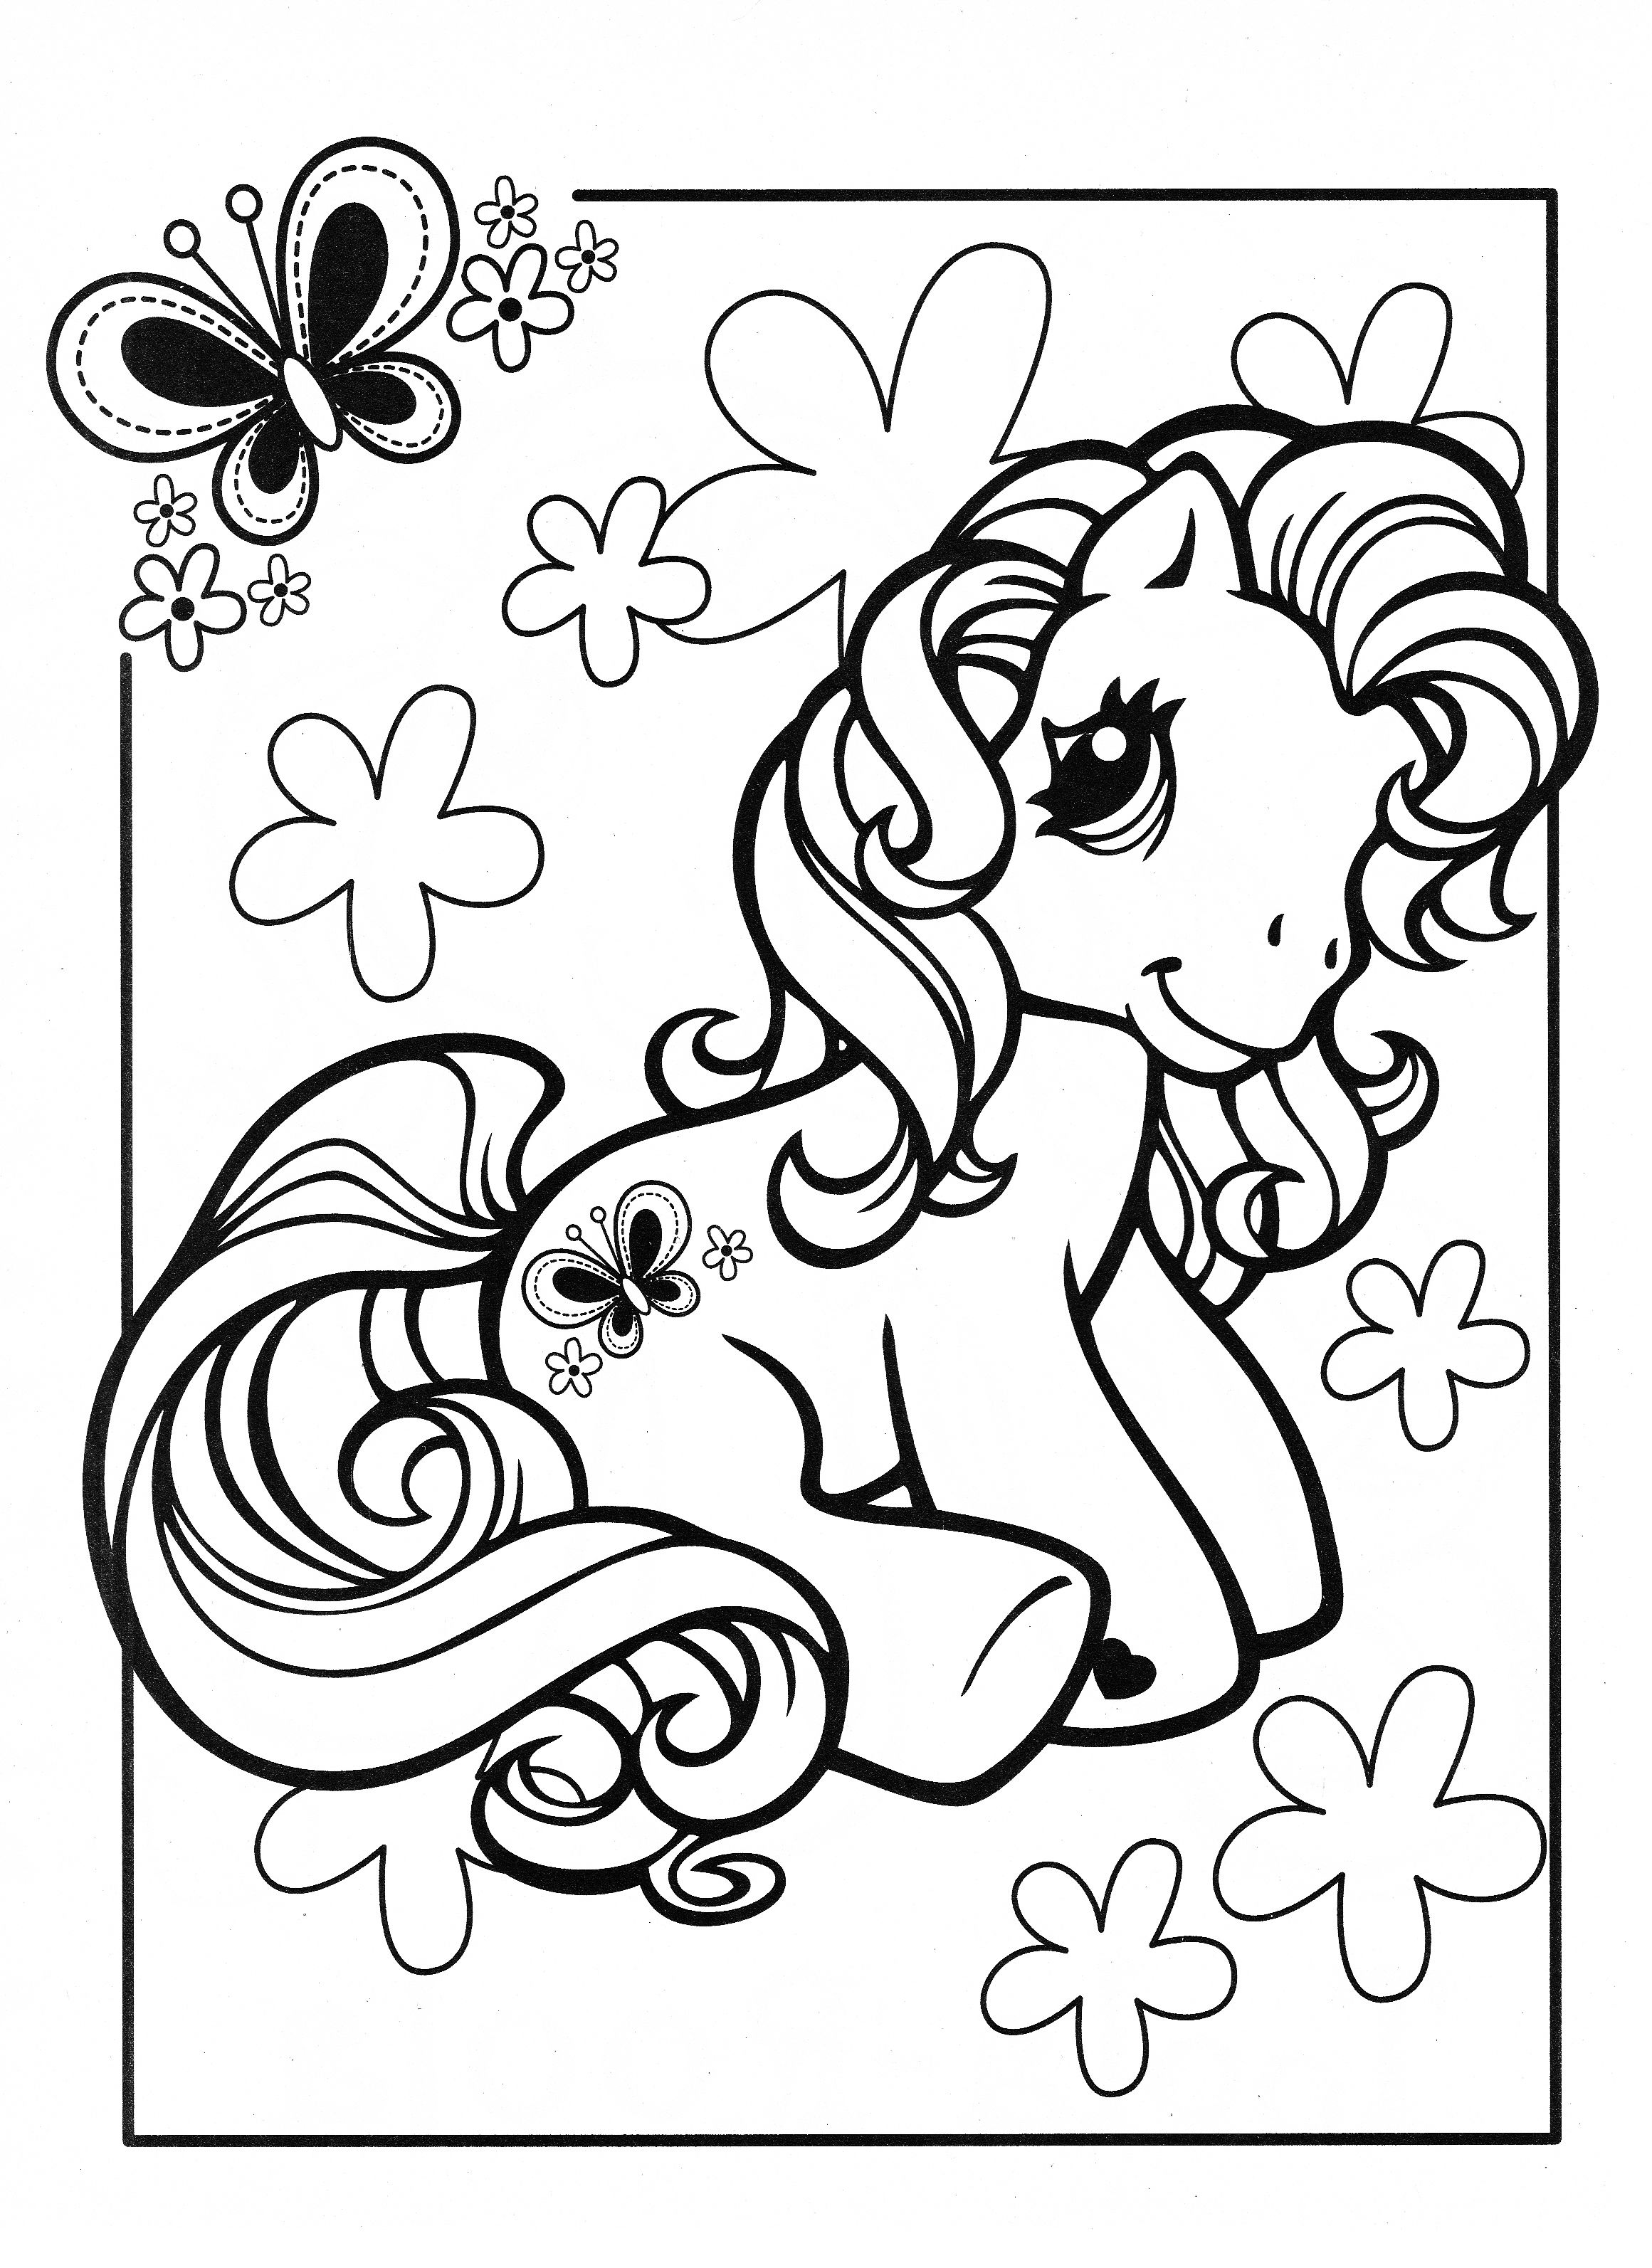 My Little Pony Coloring Page Mlp Scootaloo Unicorn Coloring